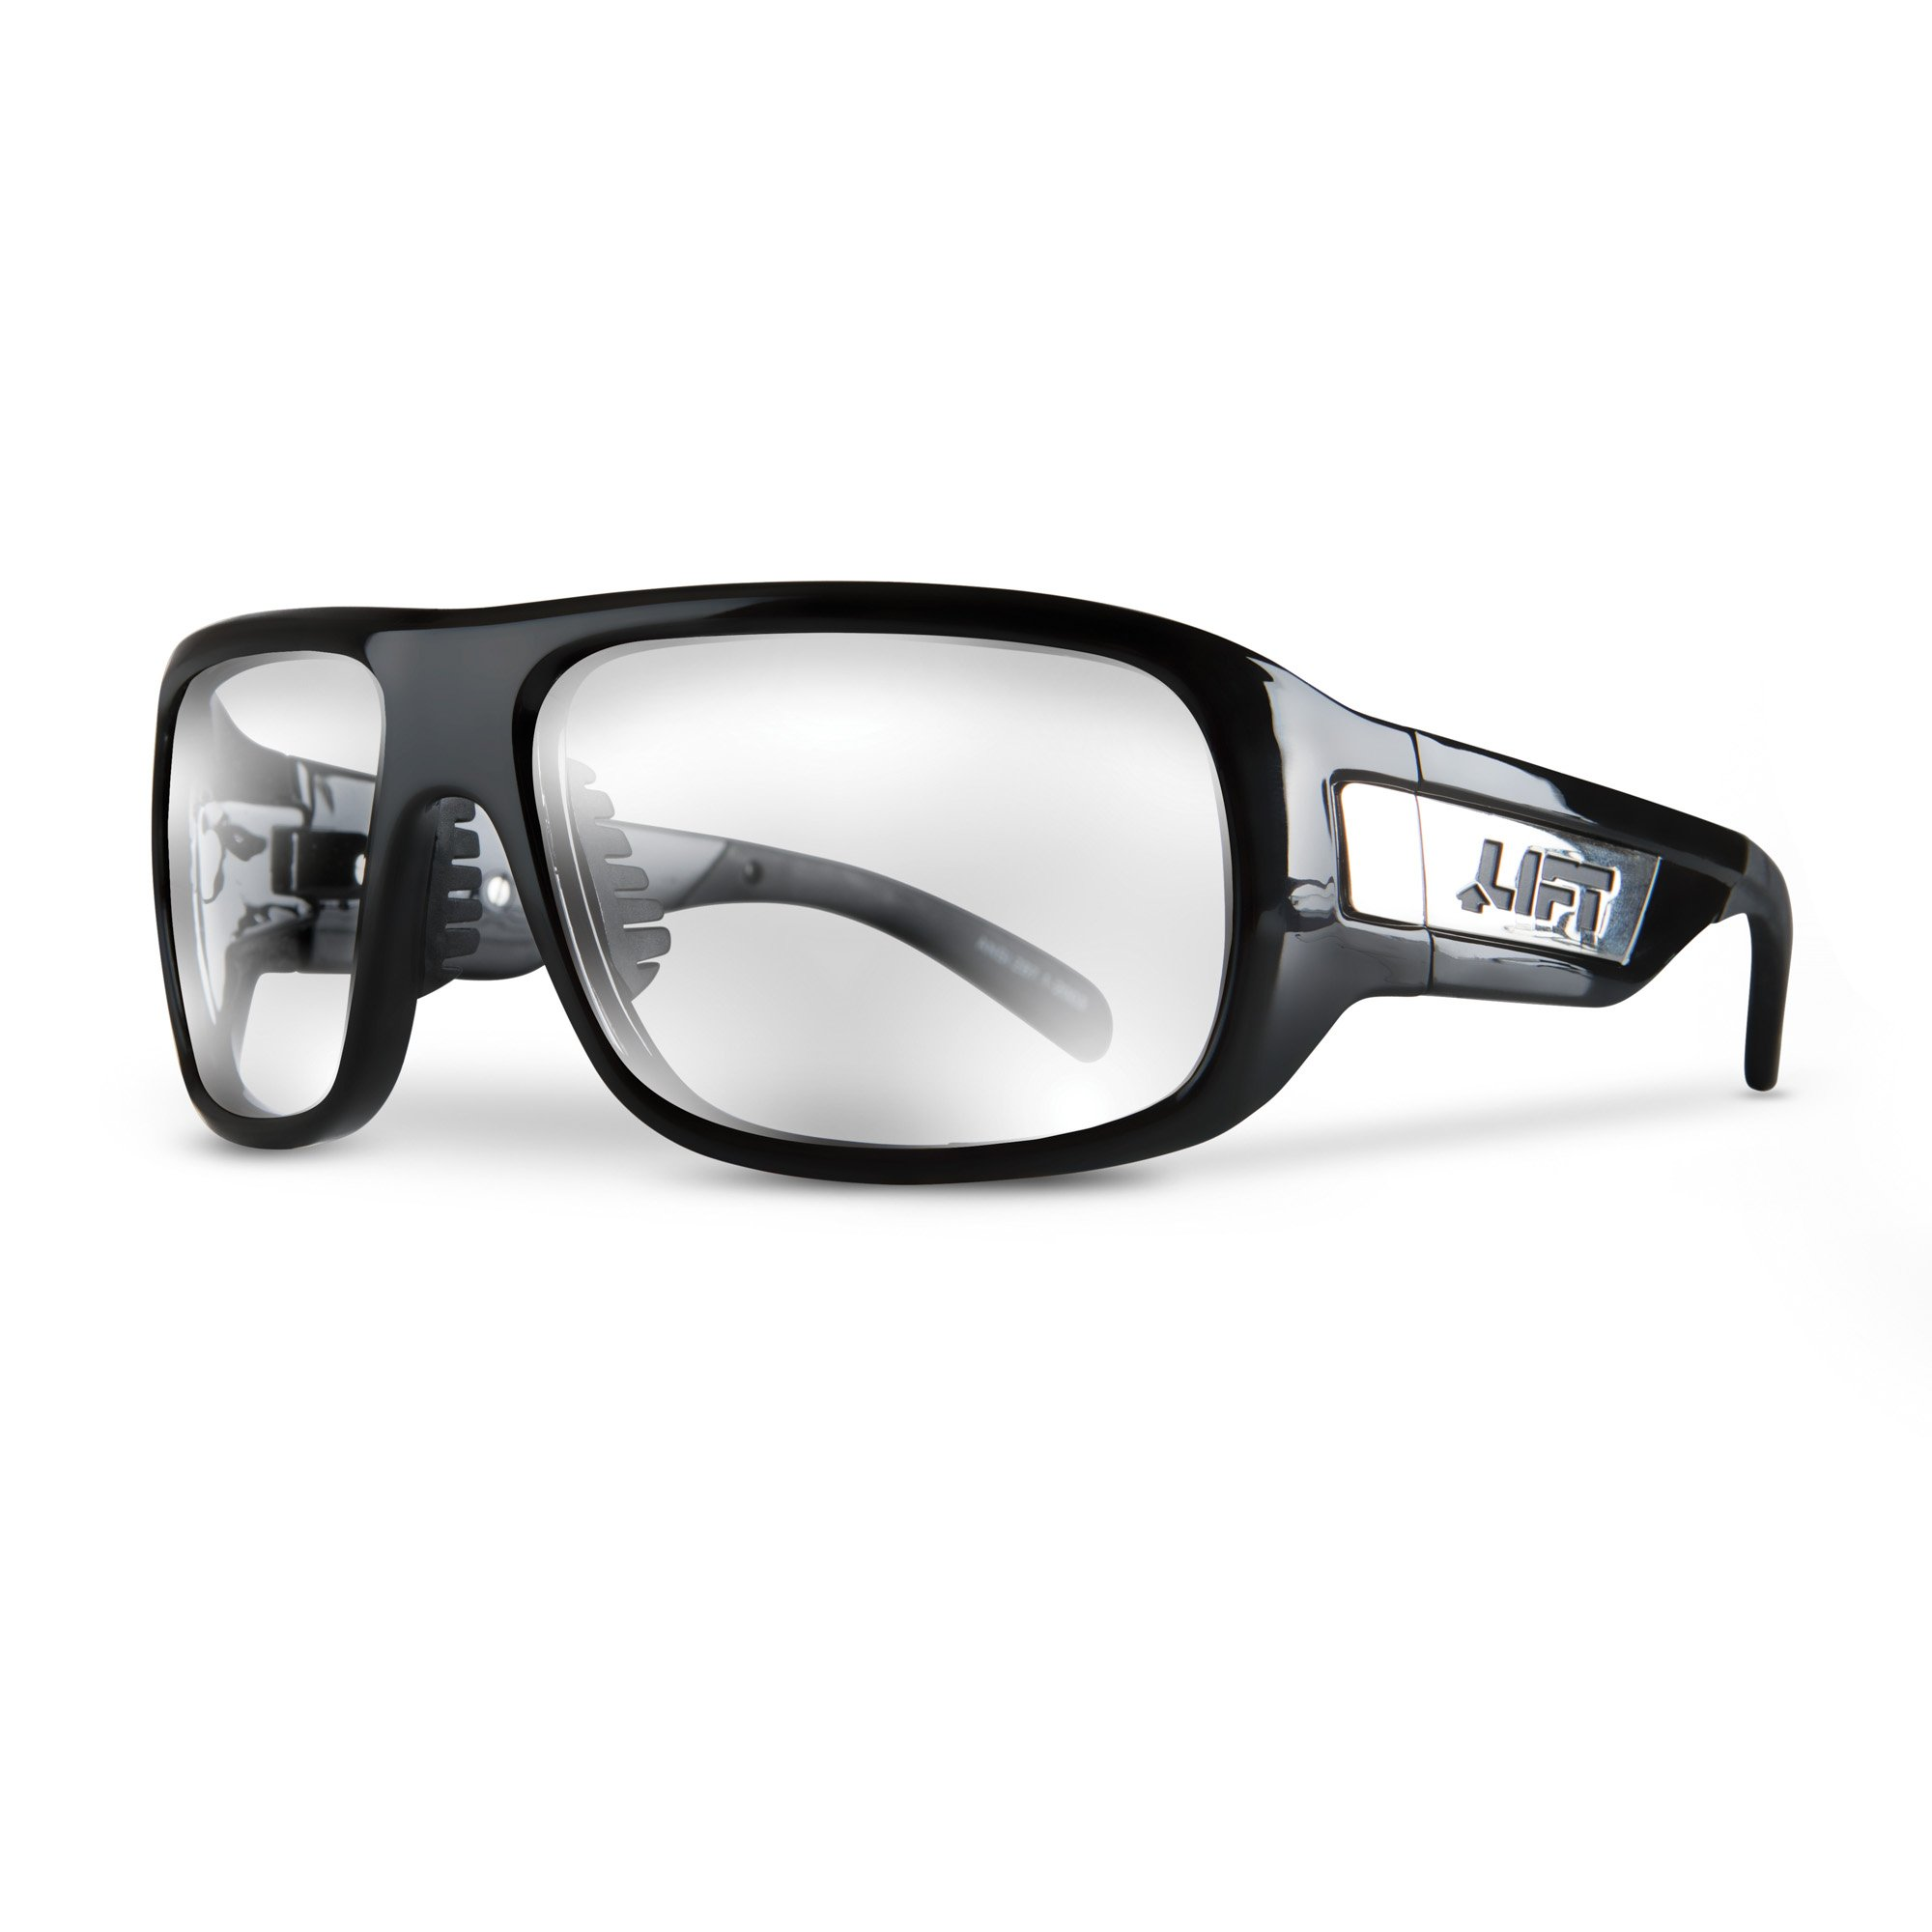 LIFT Safety Bold Safety Glasses (Black Frame/Clear Lens)